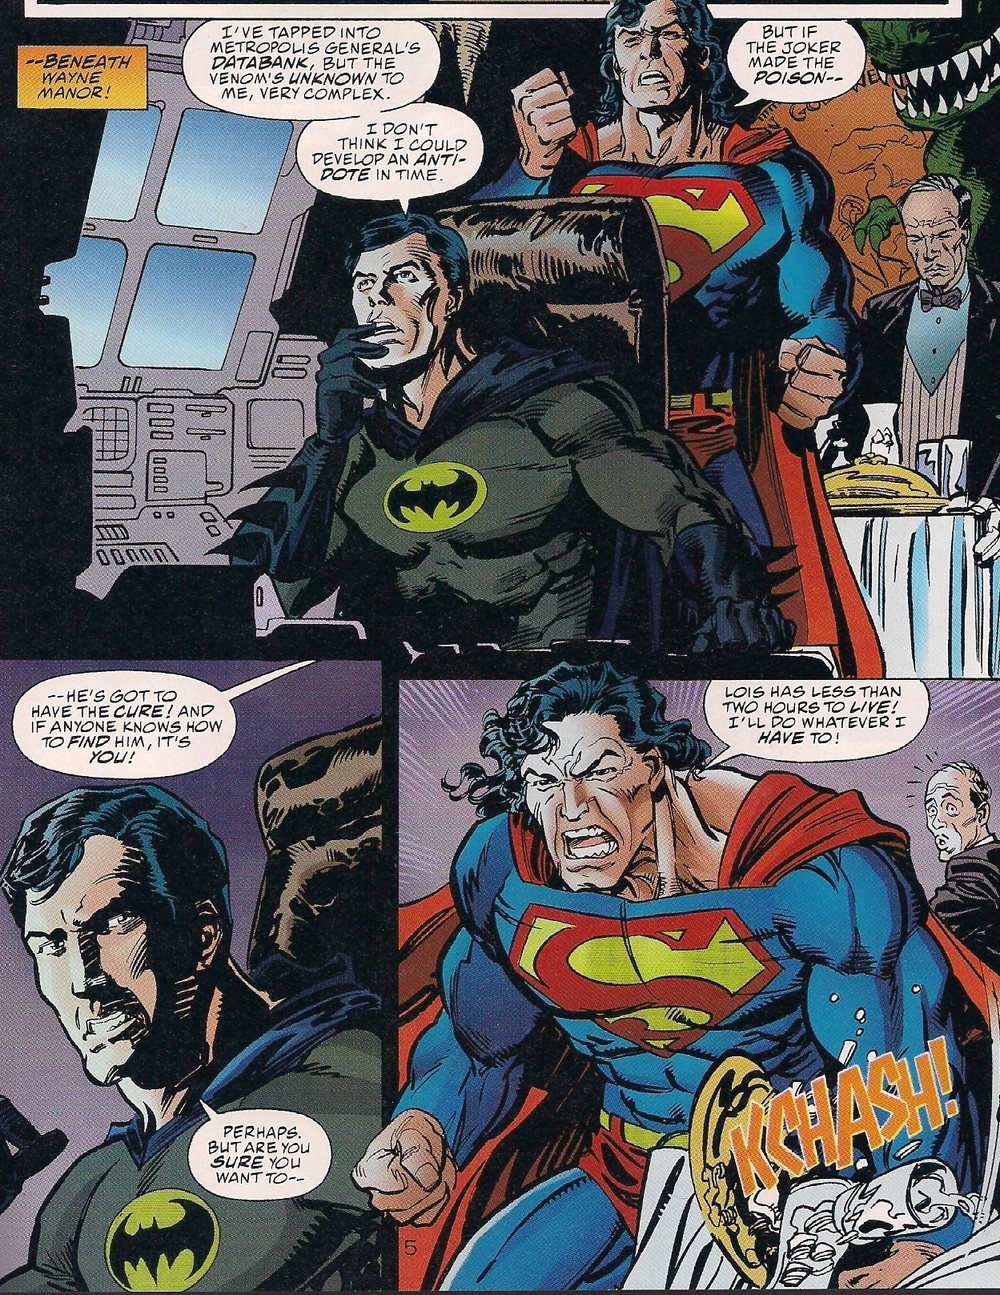 """As they say, """"You don't tug on Superman's Cape"""""""